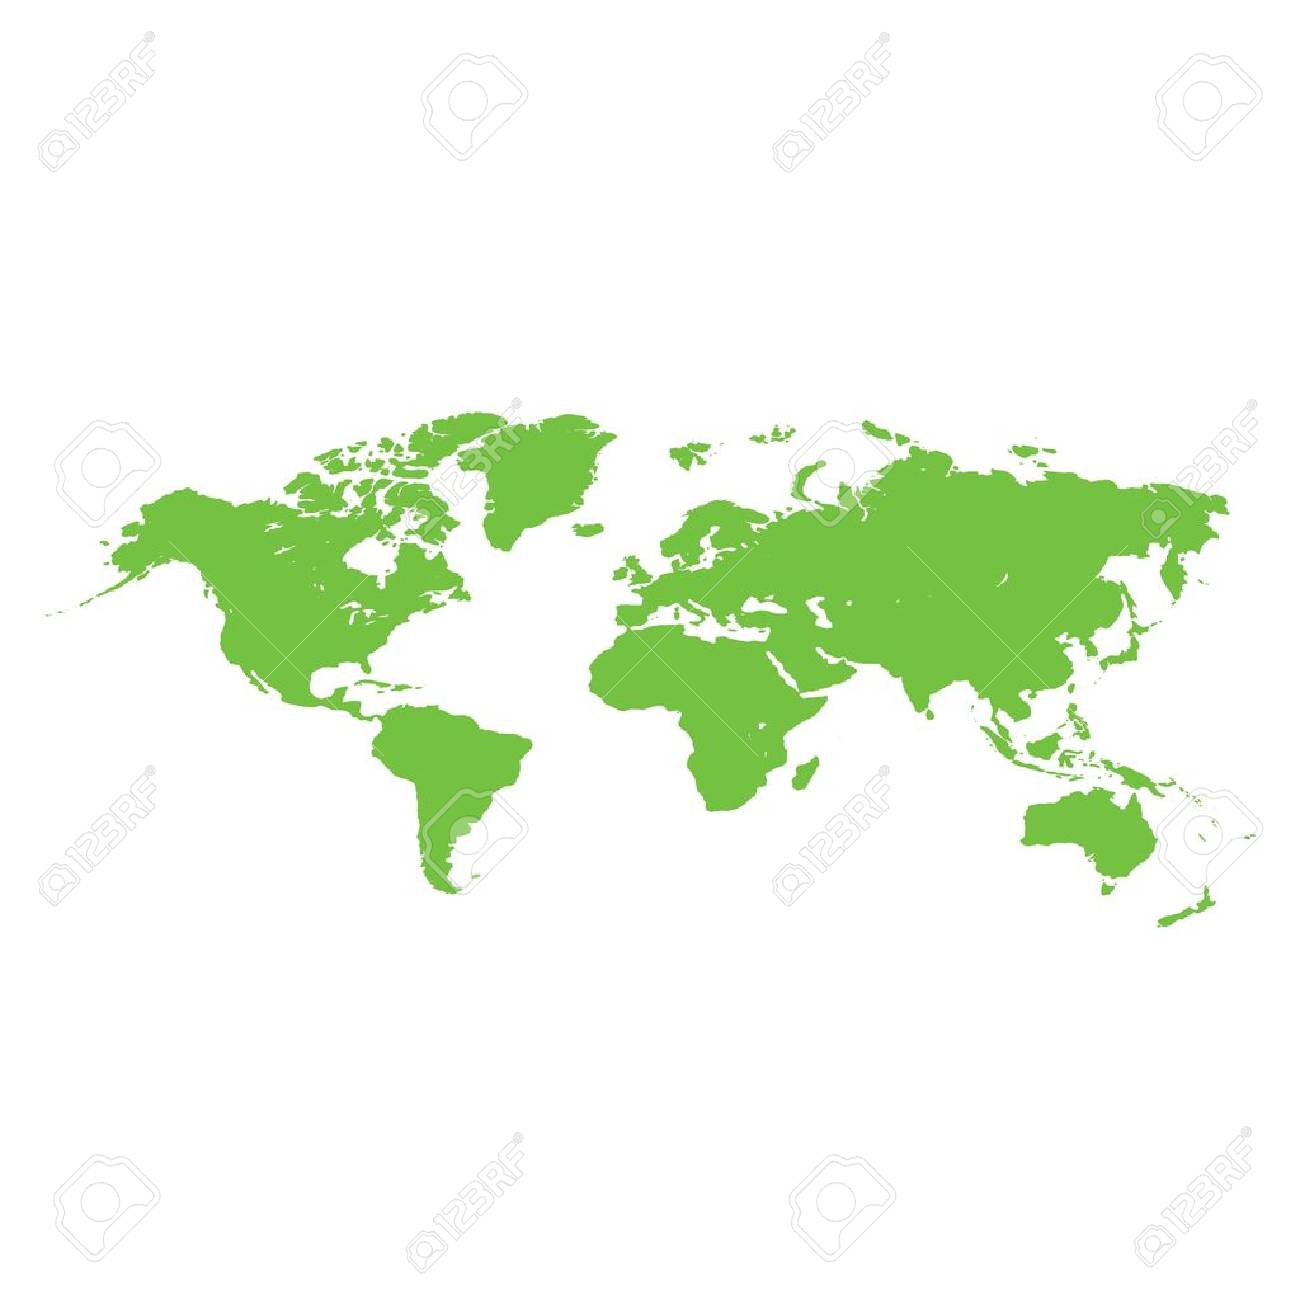 Simple green world map vector white background royalty free cliparts simple green world map vector white background stock vector 79629251 gumiabroncs Image collections